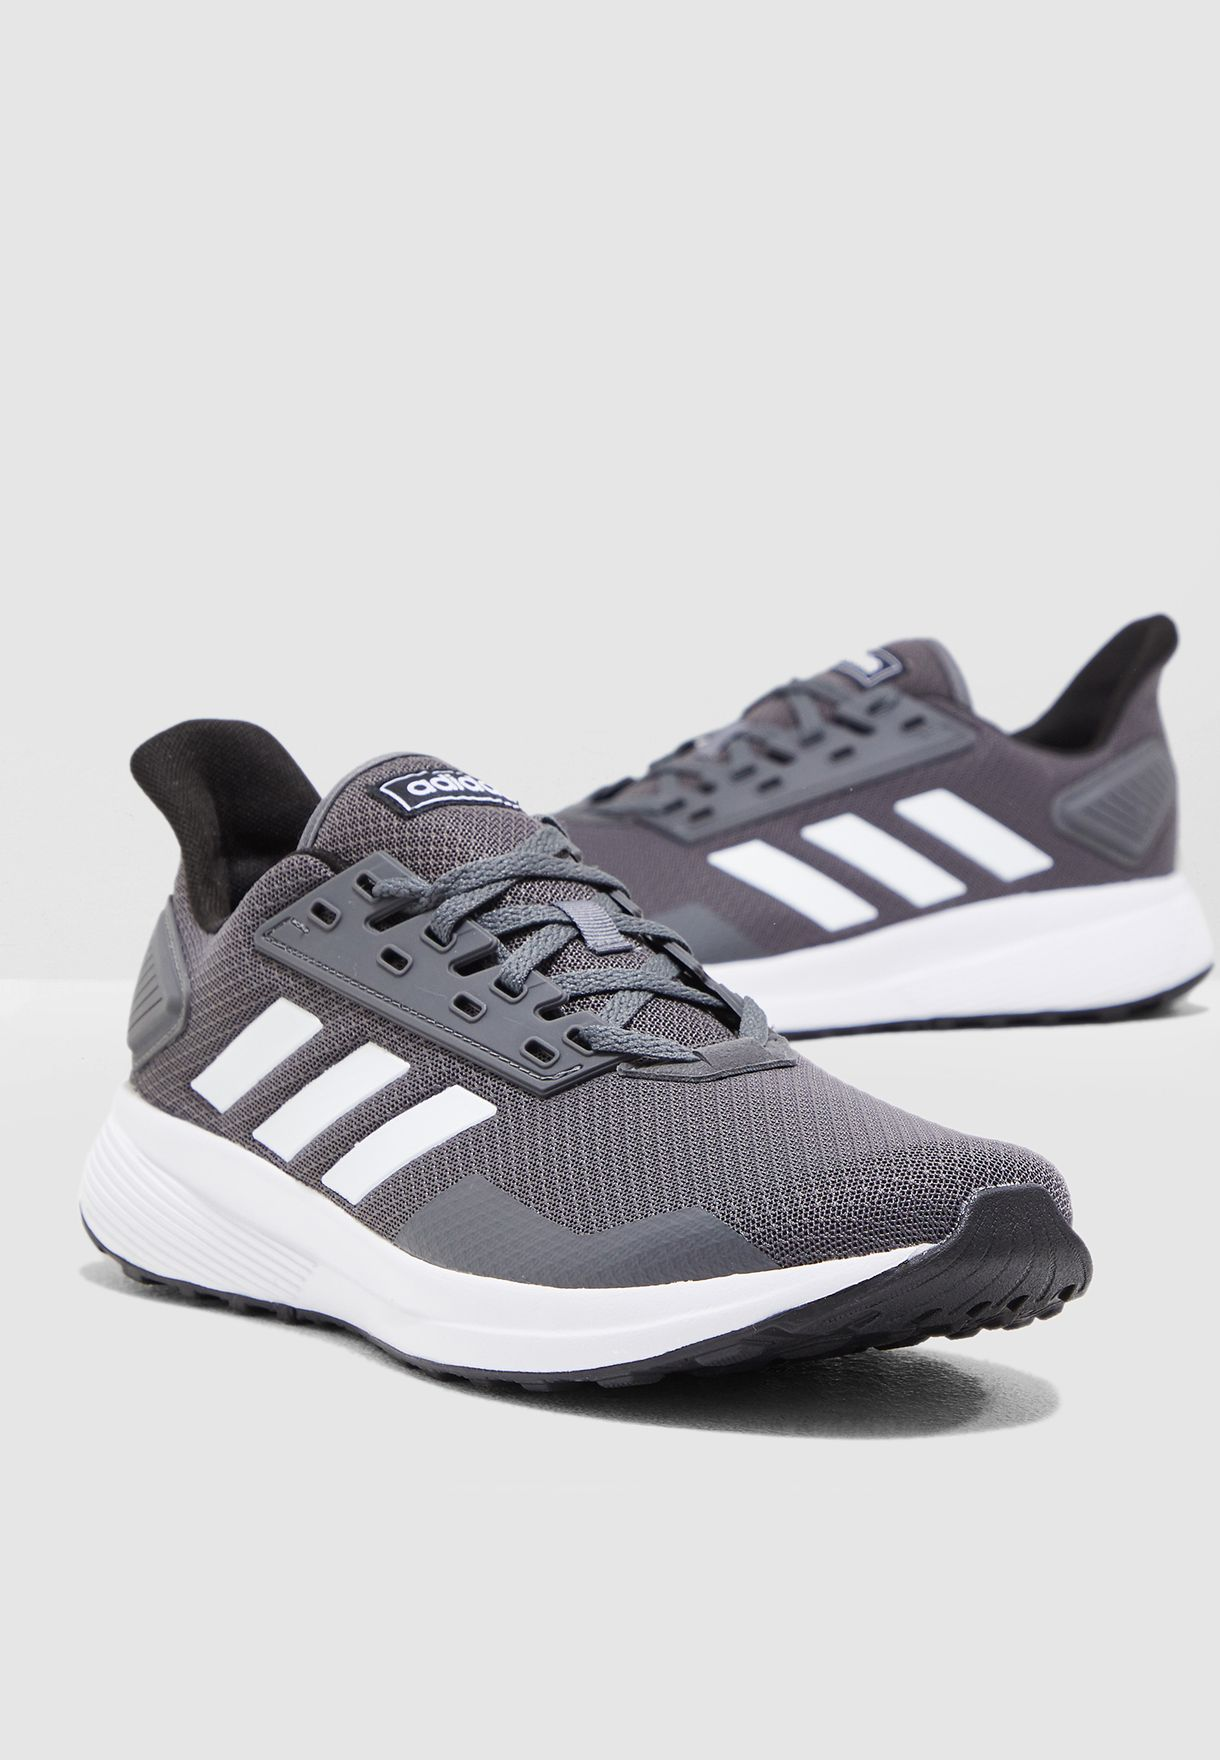 Details about Adidas Duramo 8 M Mens Trainers Running Shoes Fitness Casual Shoes New show original title